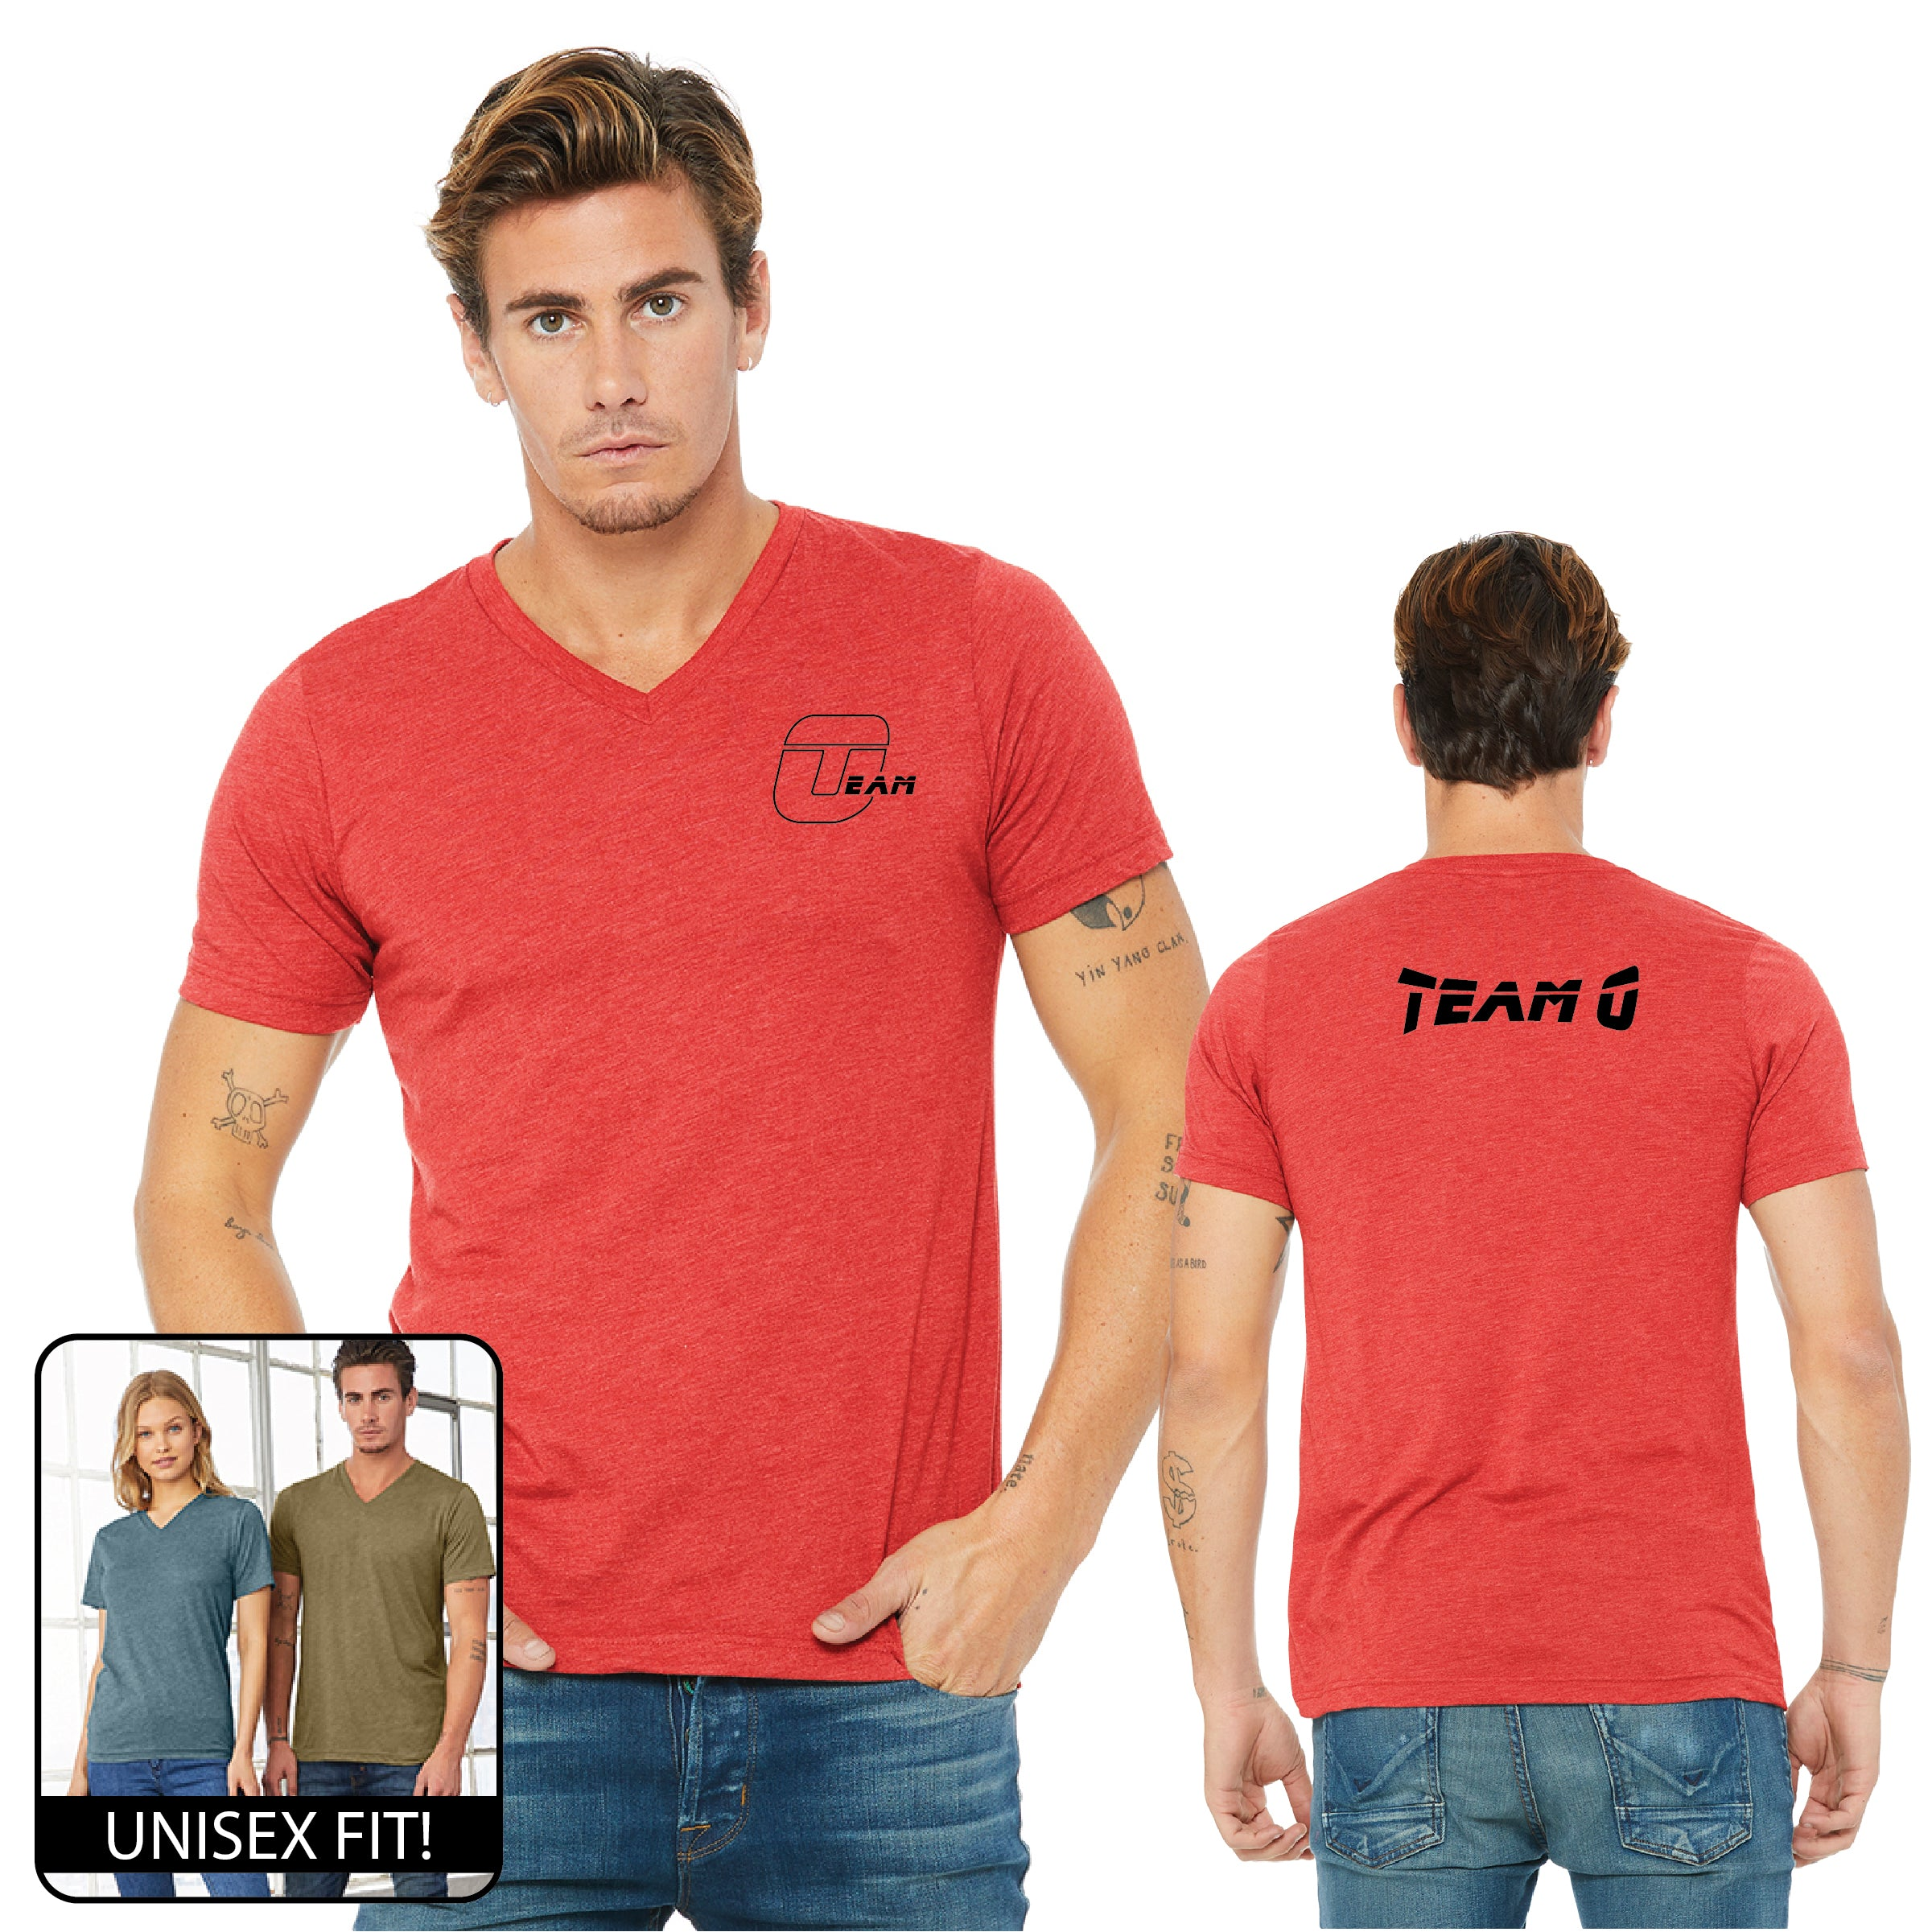 Team O BellaCanvas Unisex Triblend Short-Sleeve V-Neck T-Shirt